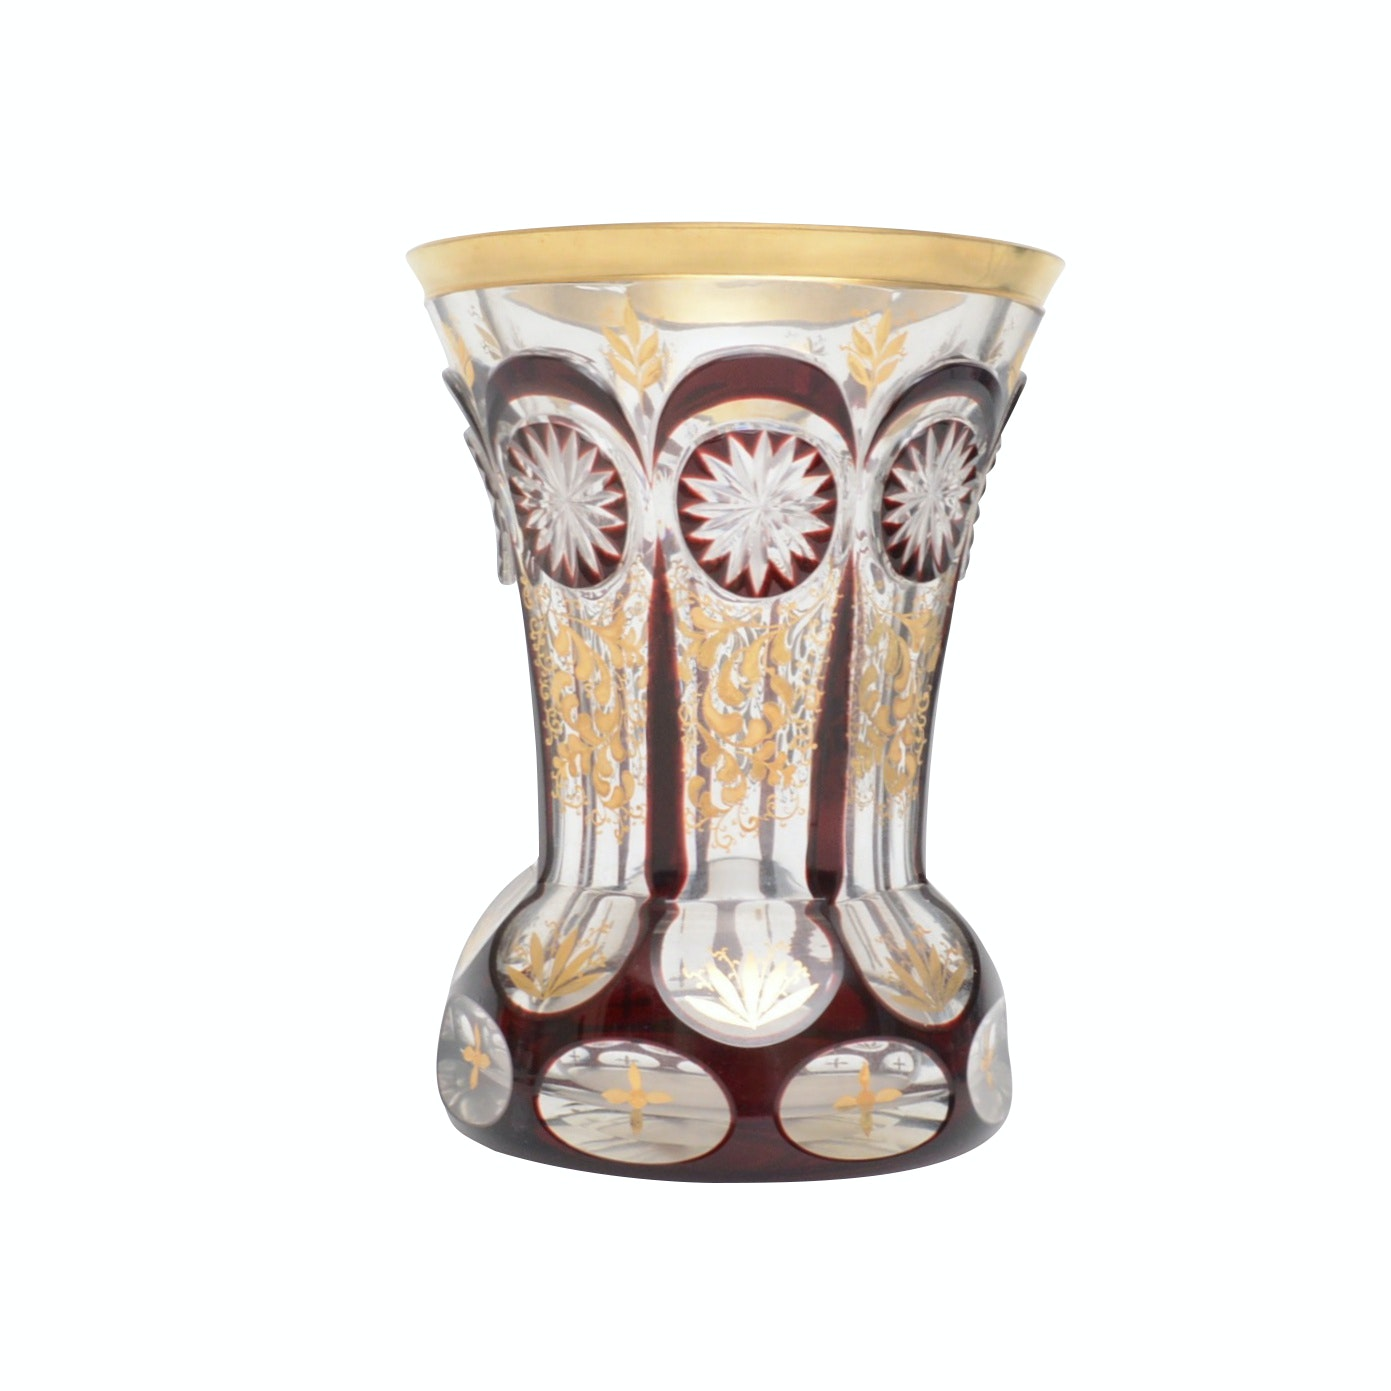 Bohemian Clear and Ruby Flashed Cut Crystal Vase with Gold Lustre